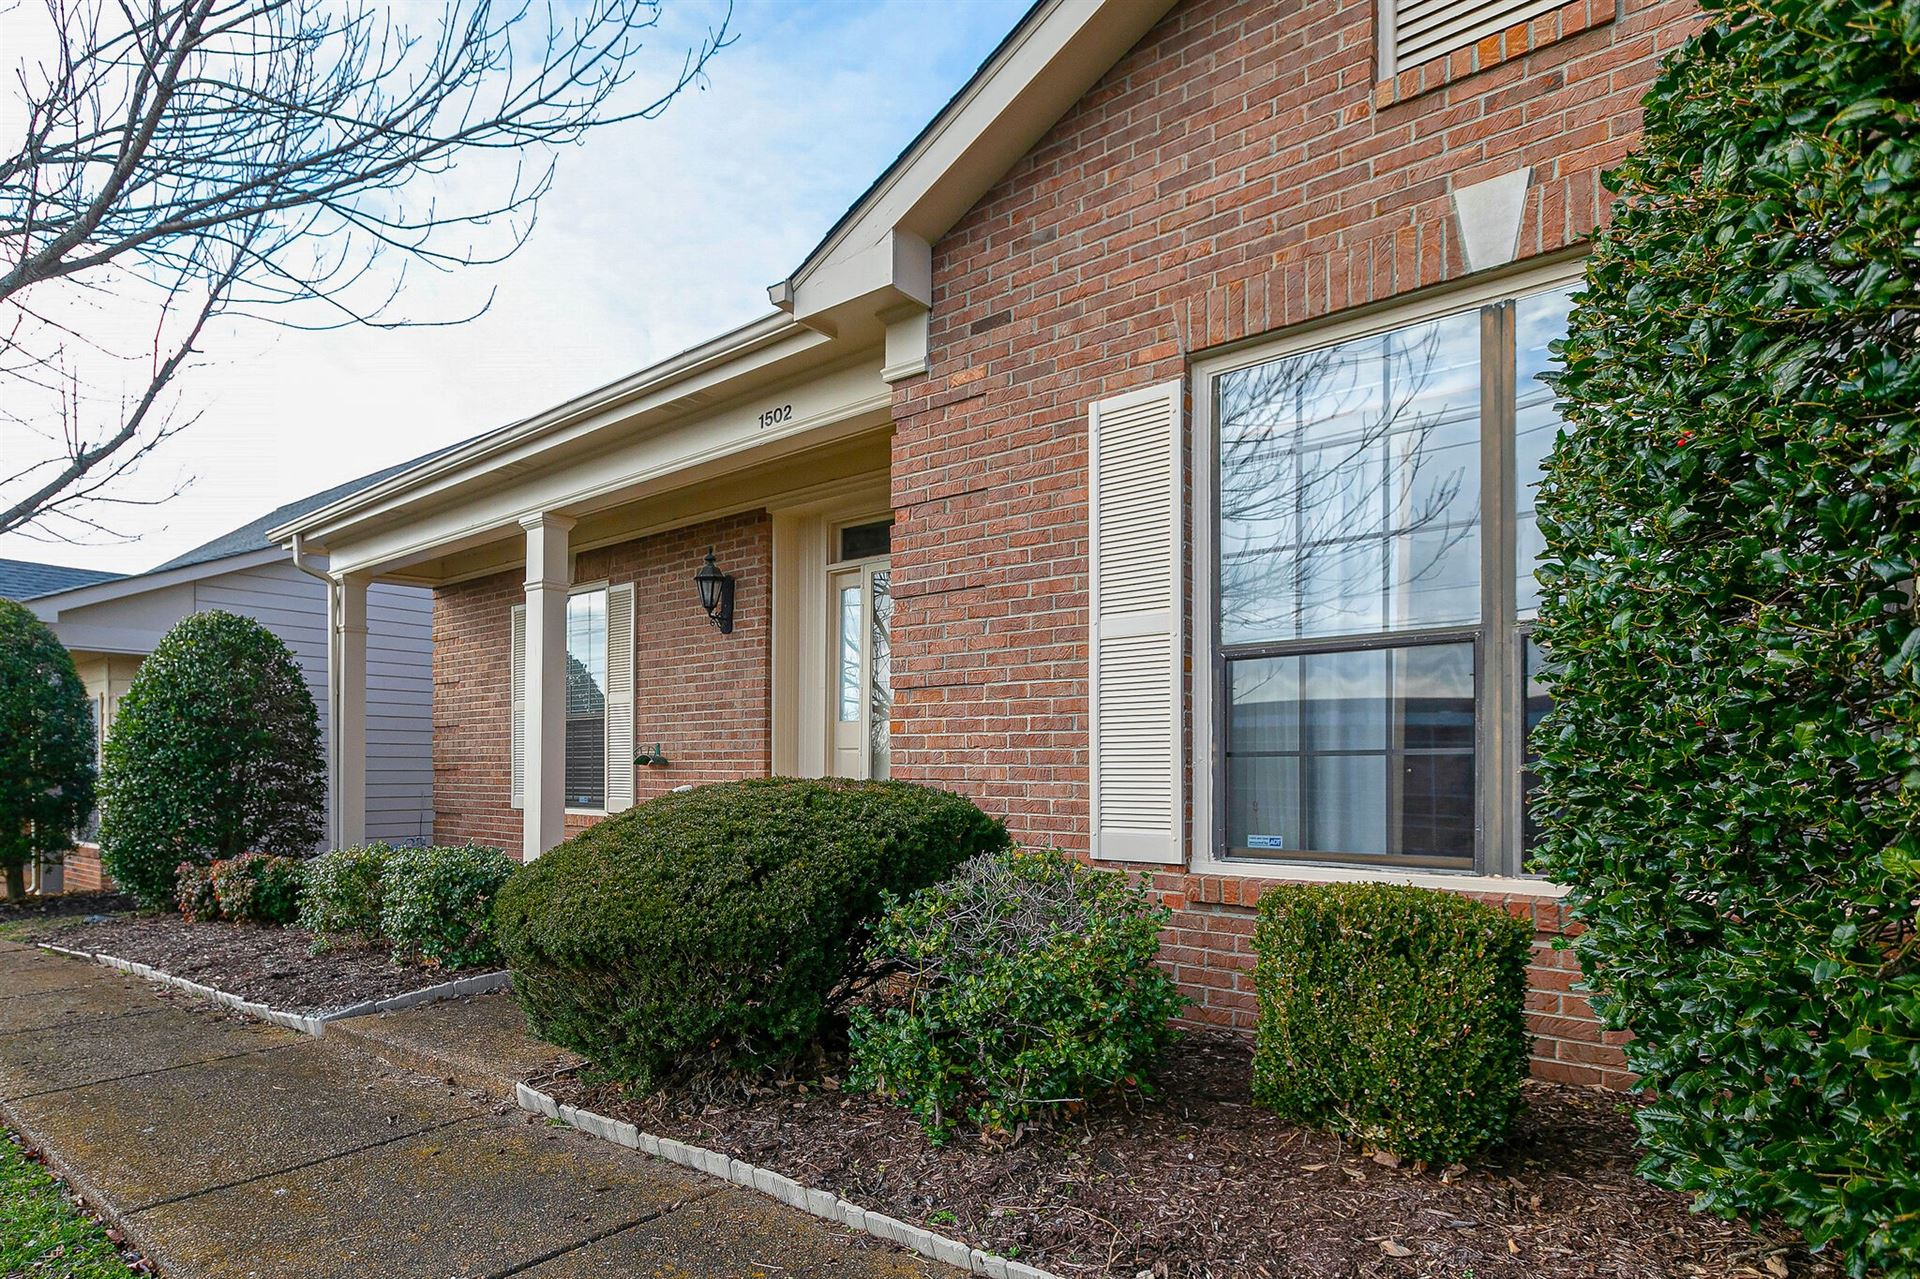 Photo of 1502 Brentwood Pt, Brentwood, TN 37027 (MLS # 2216773)